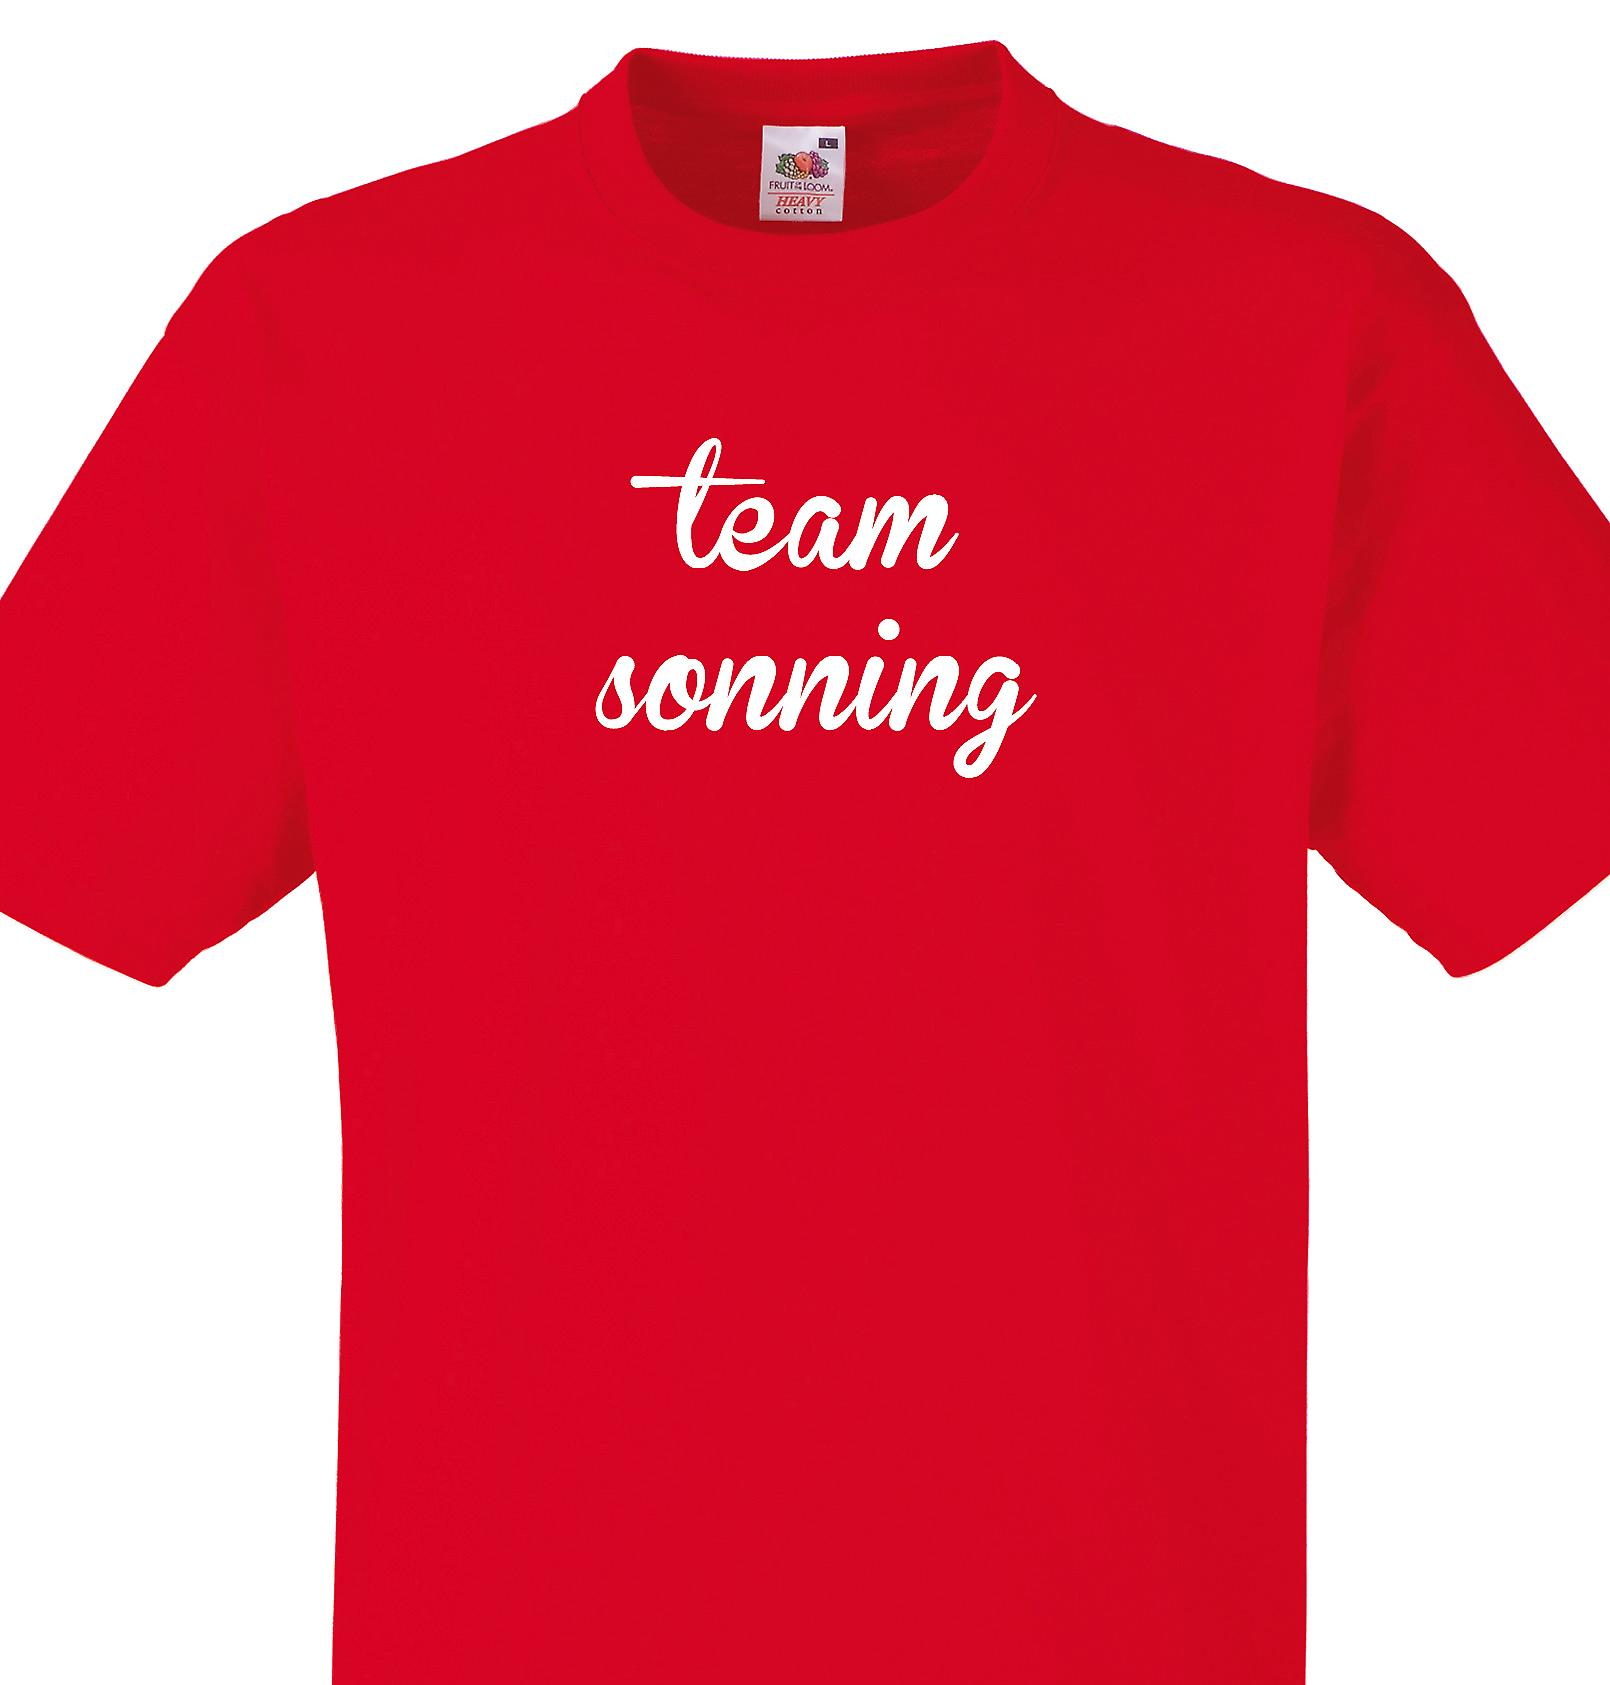 Team Sonning Red T shirt